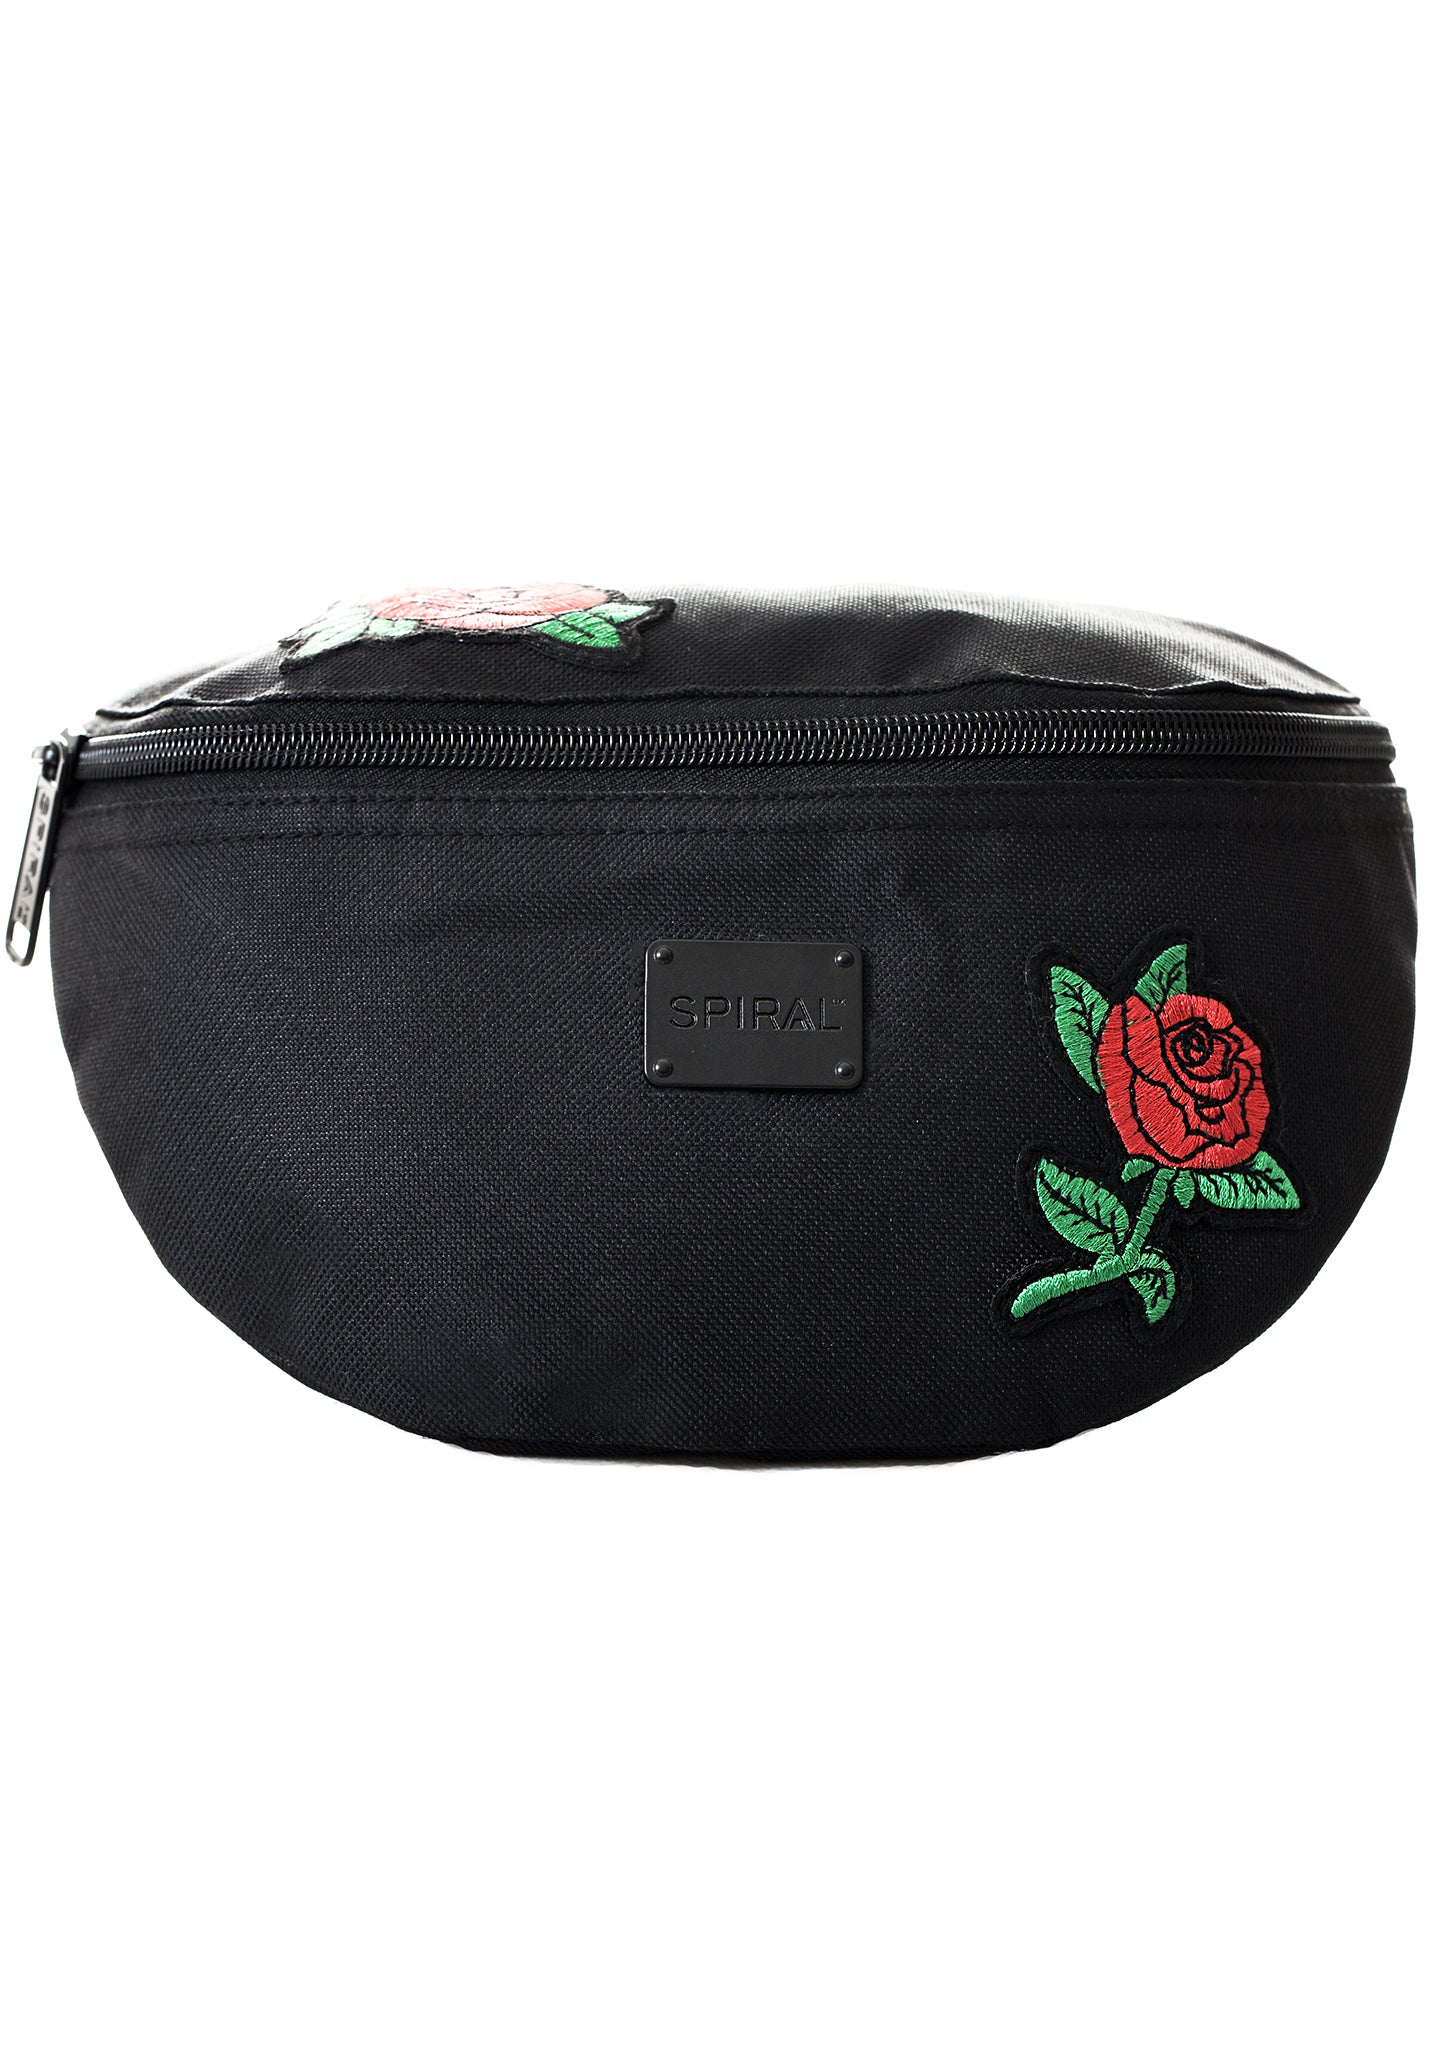 Forbidden Rose Patches Bum Bag in Midnight Black